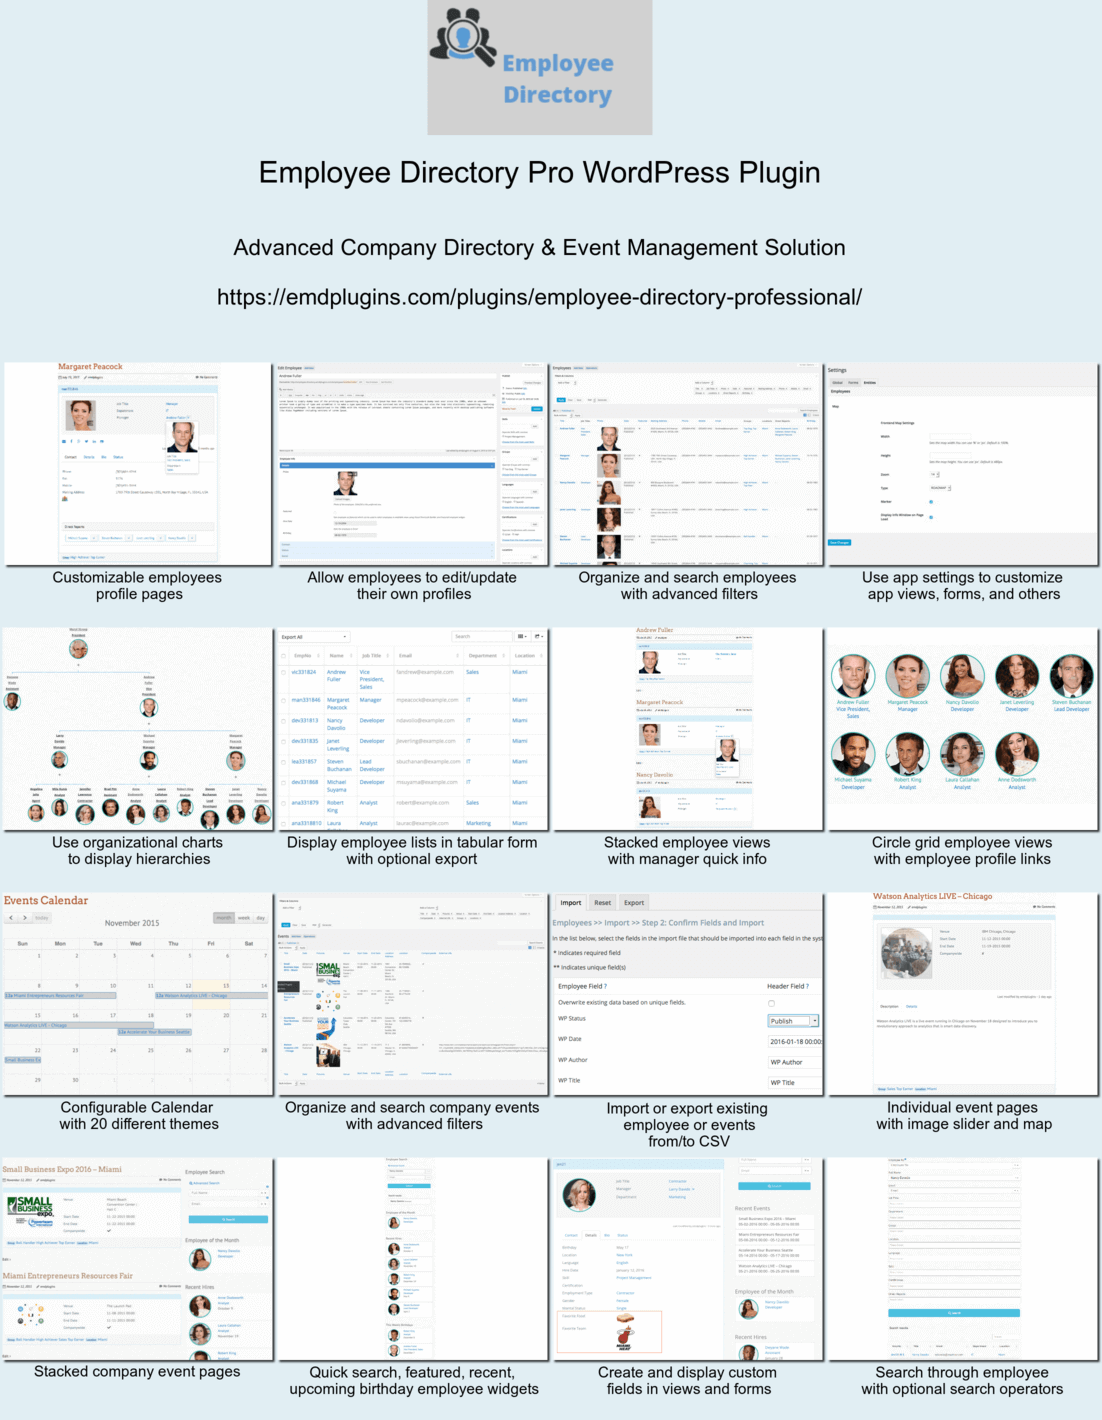 Employee directory pro most advanced company and event management solution built with wp app studio also staff  for wordpress rh